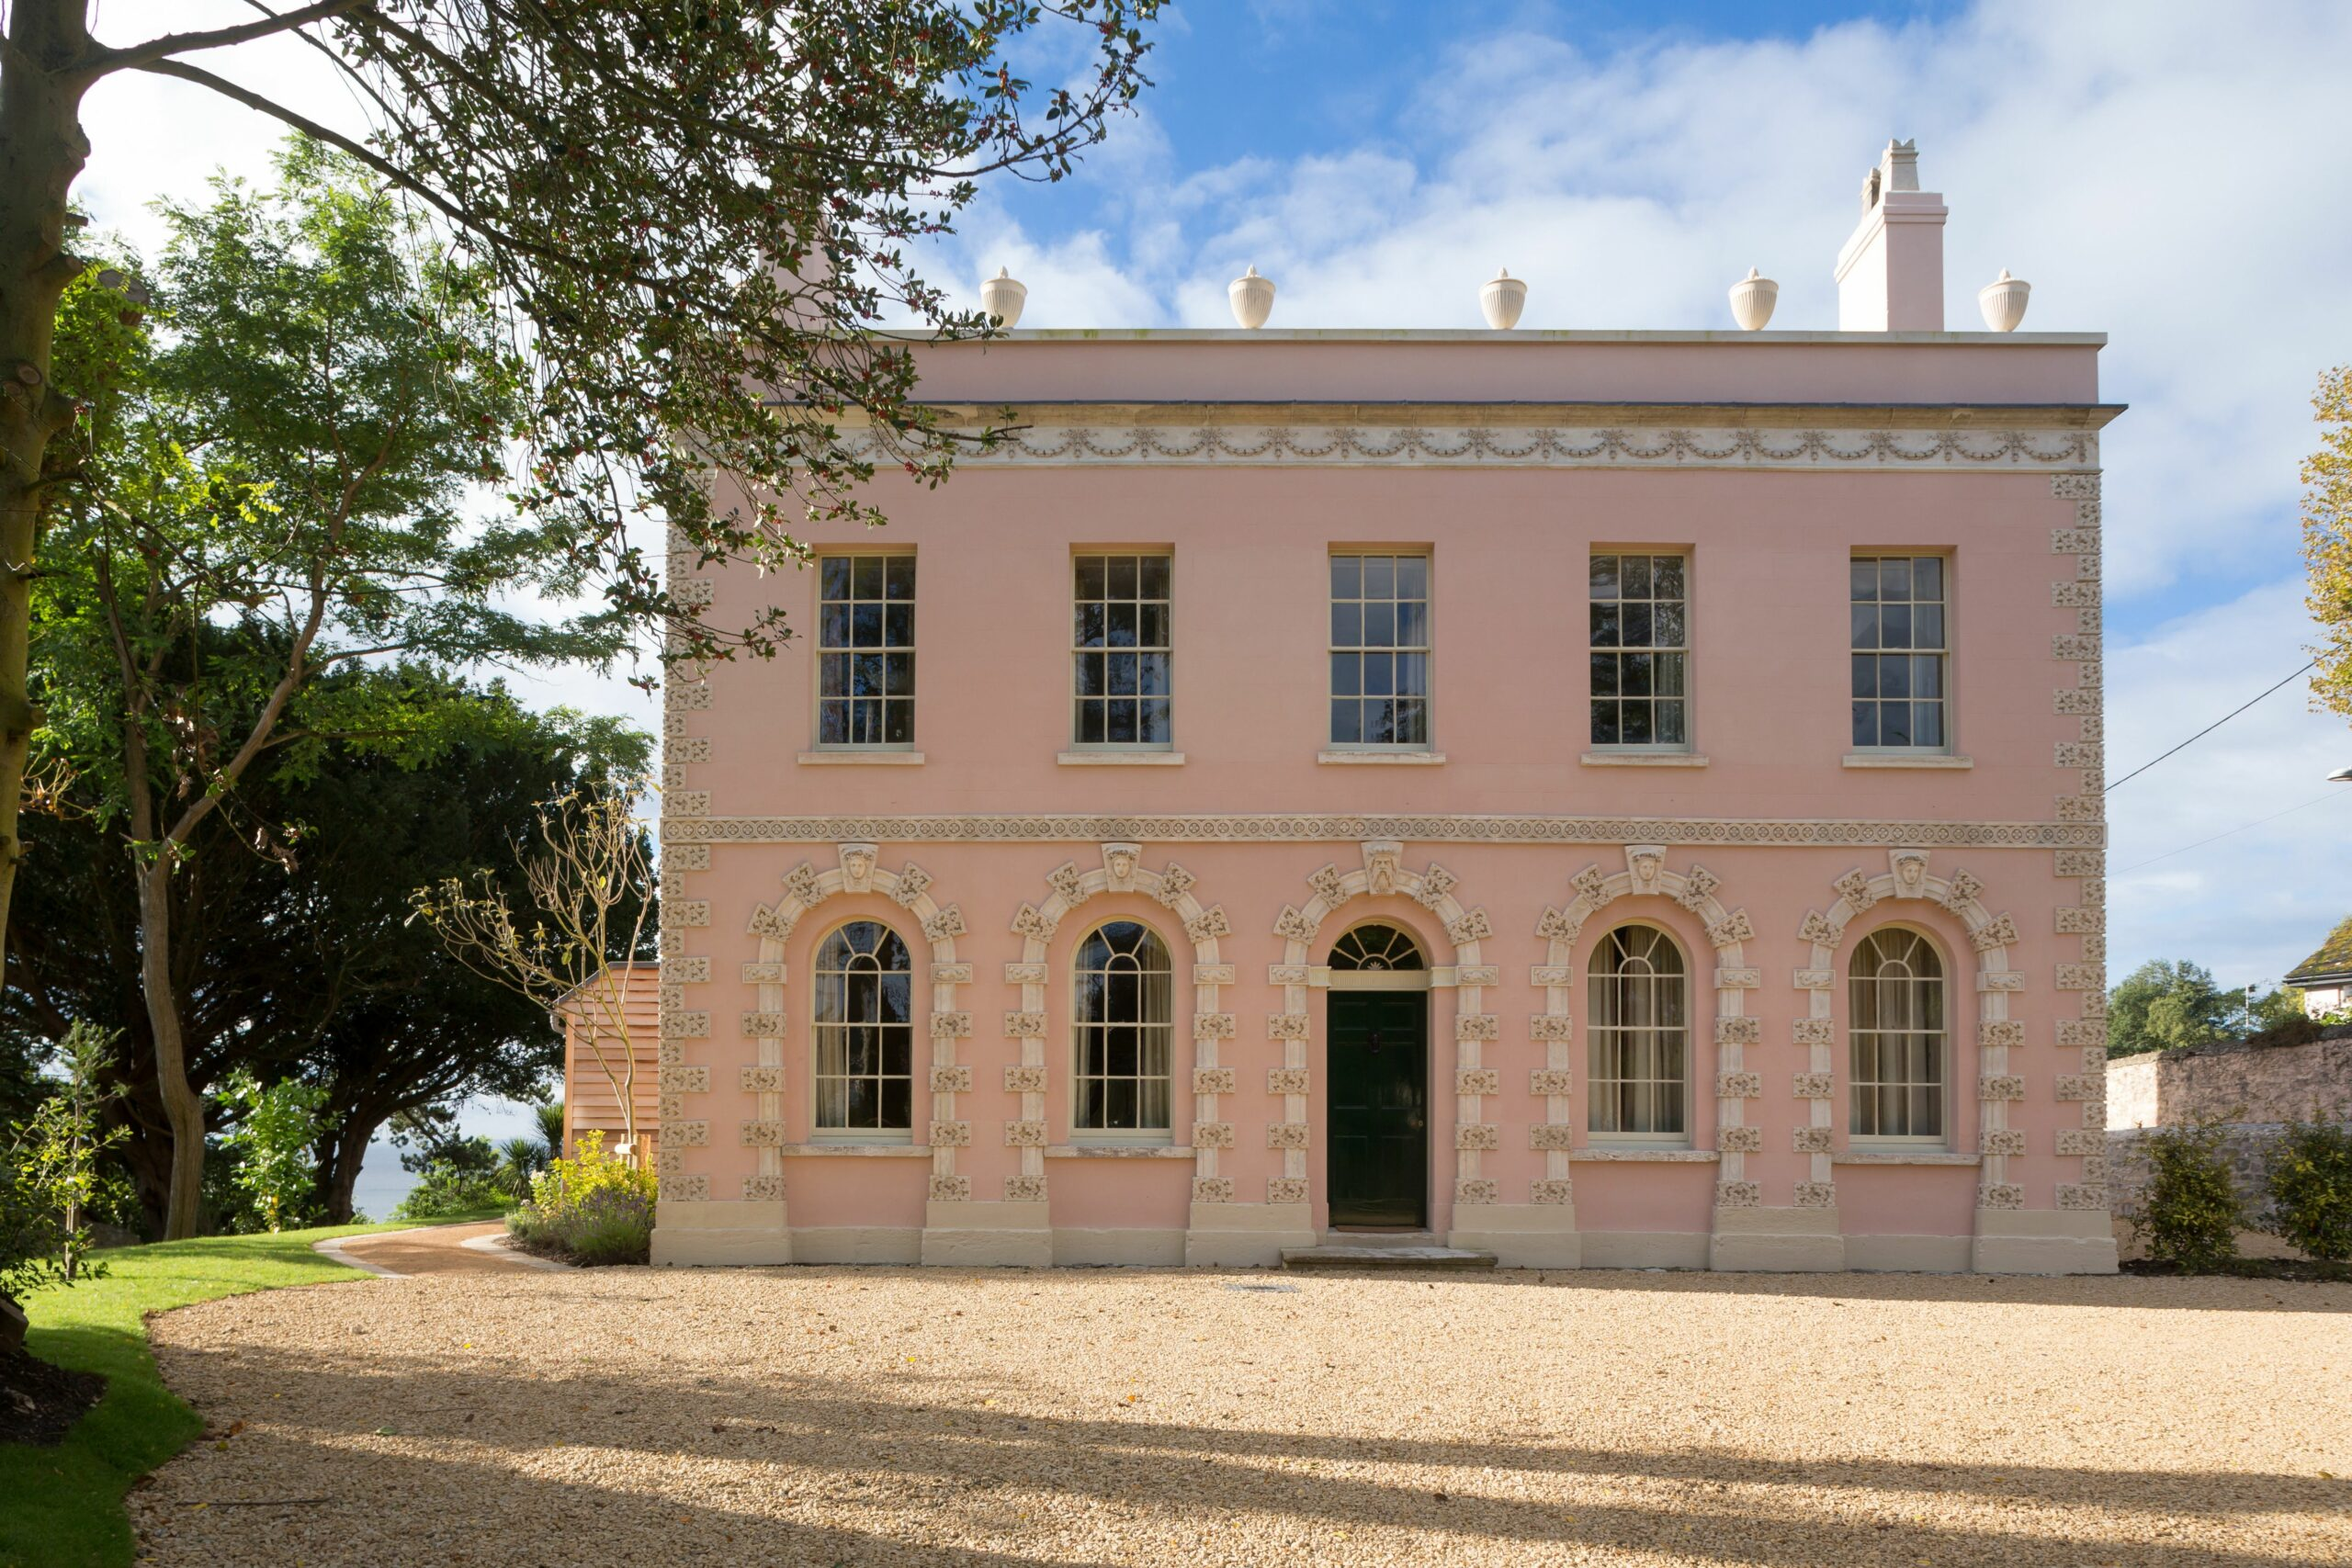 The Landmark Trust is The Airbnb For Historic European Homes | Vogue - companies house inspiration trust